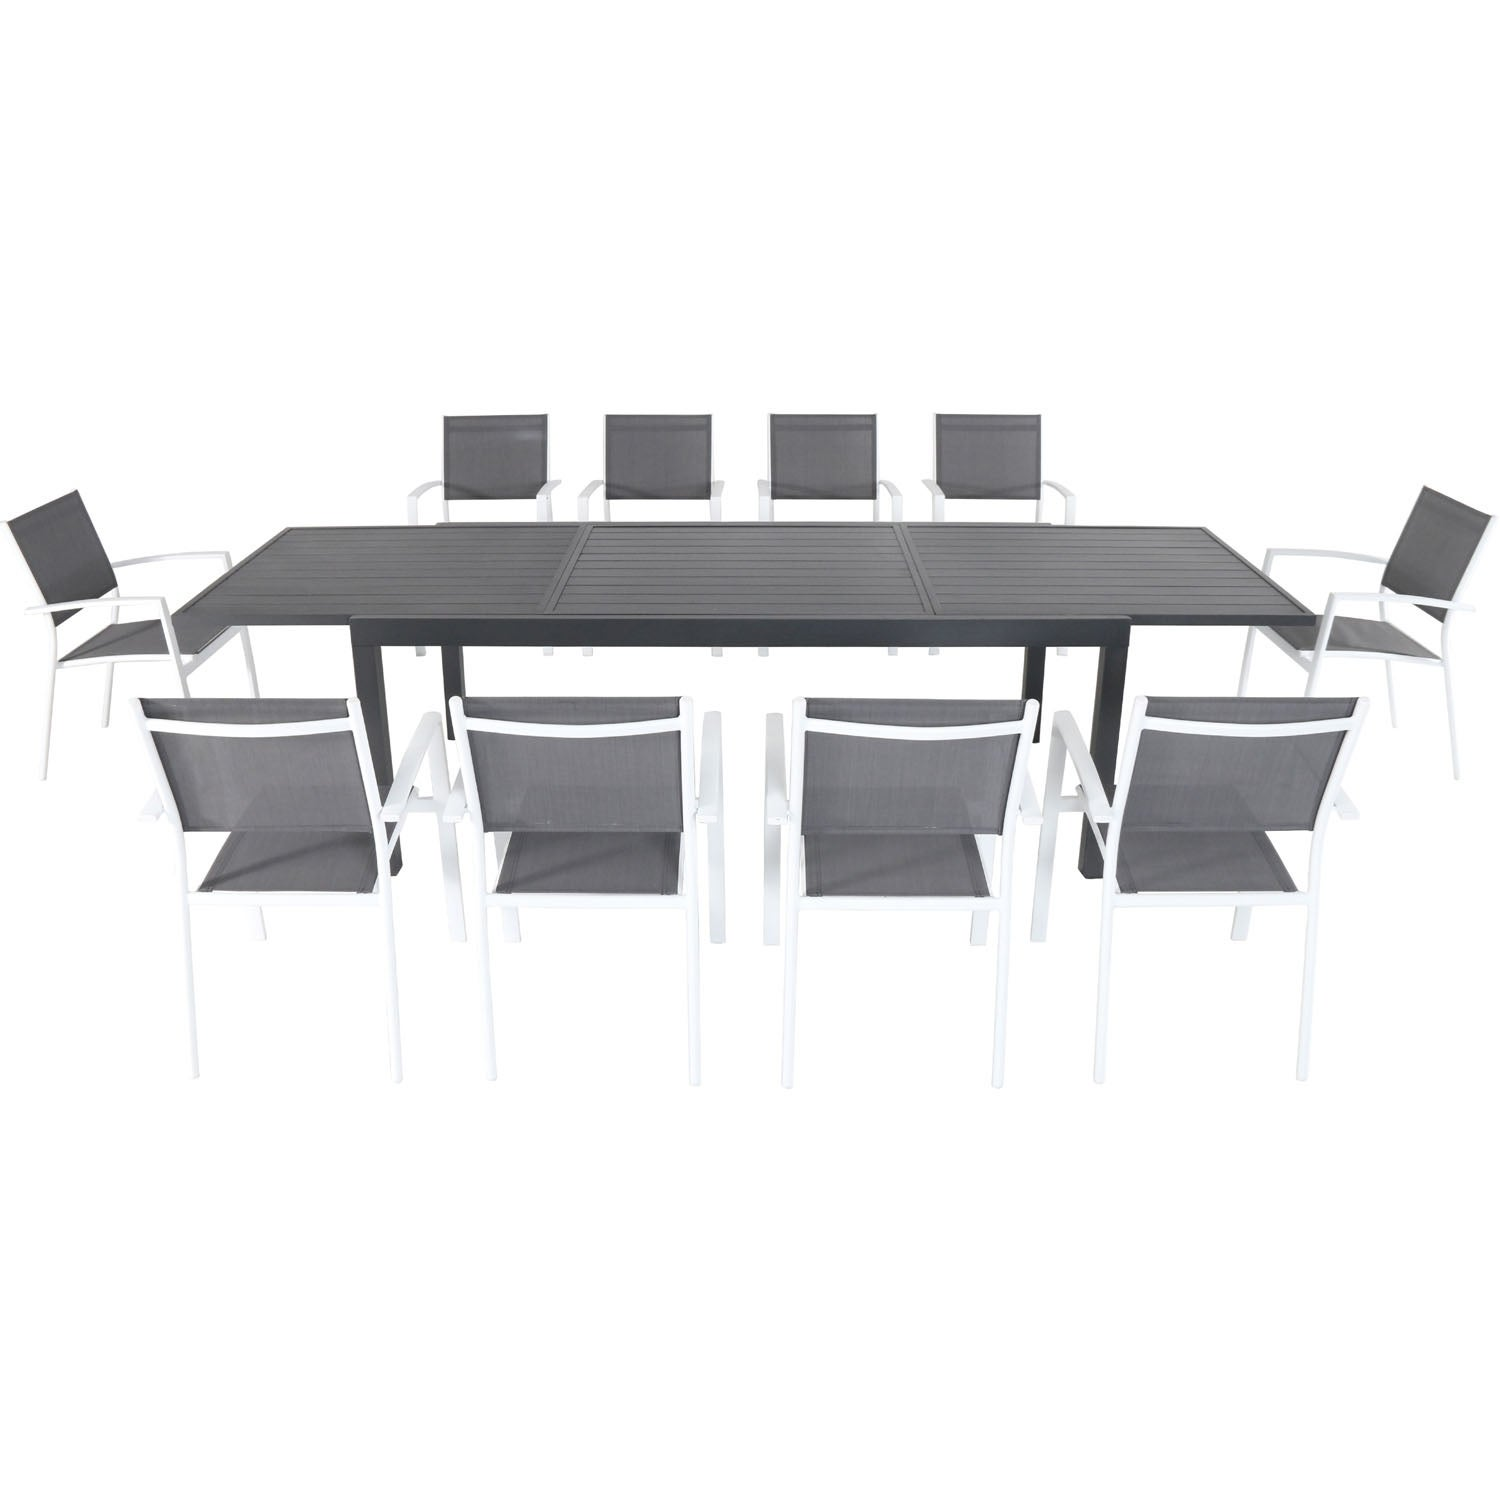 Cambridge Nova 11-Piece Outdoor Dining Set with 10 Sling Chairs in Gray/White and a 40 x 118 Expandable Dining Table